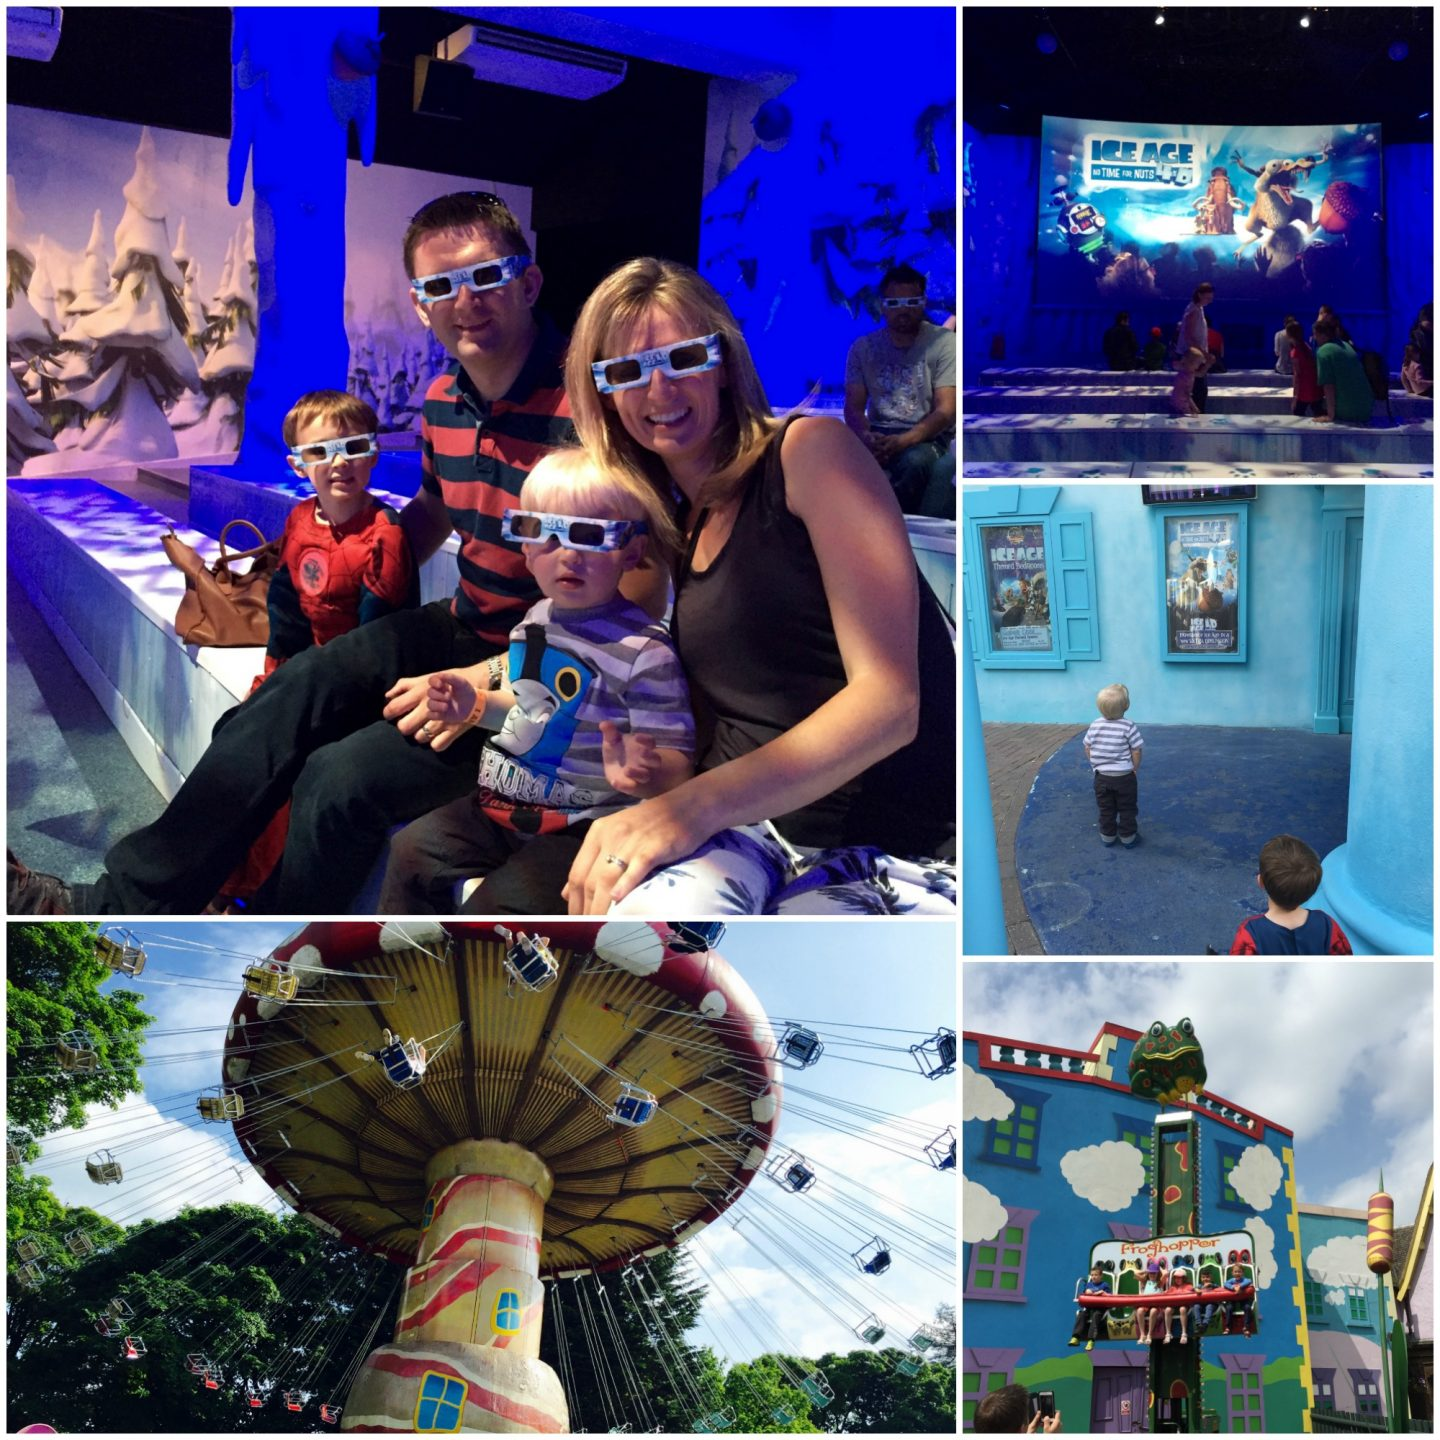 Review Alton Towers theme park and water park - 4D show